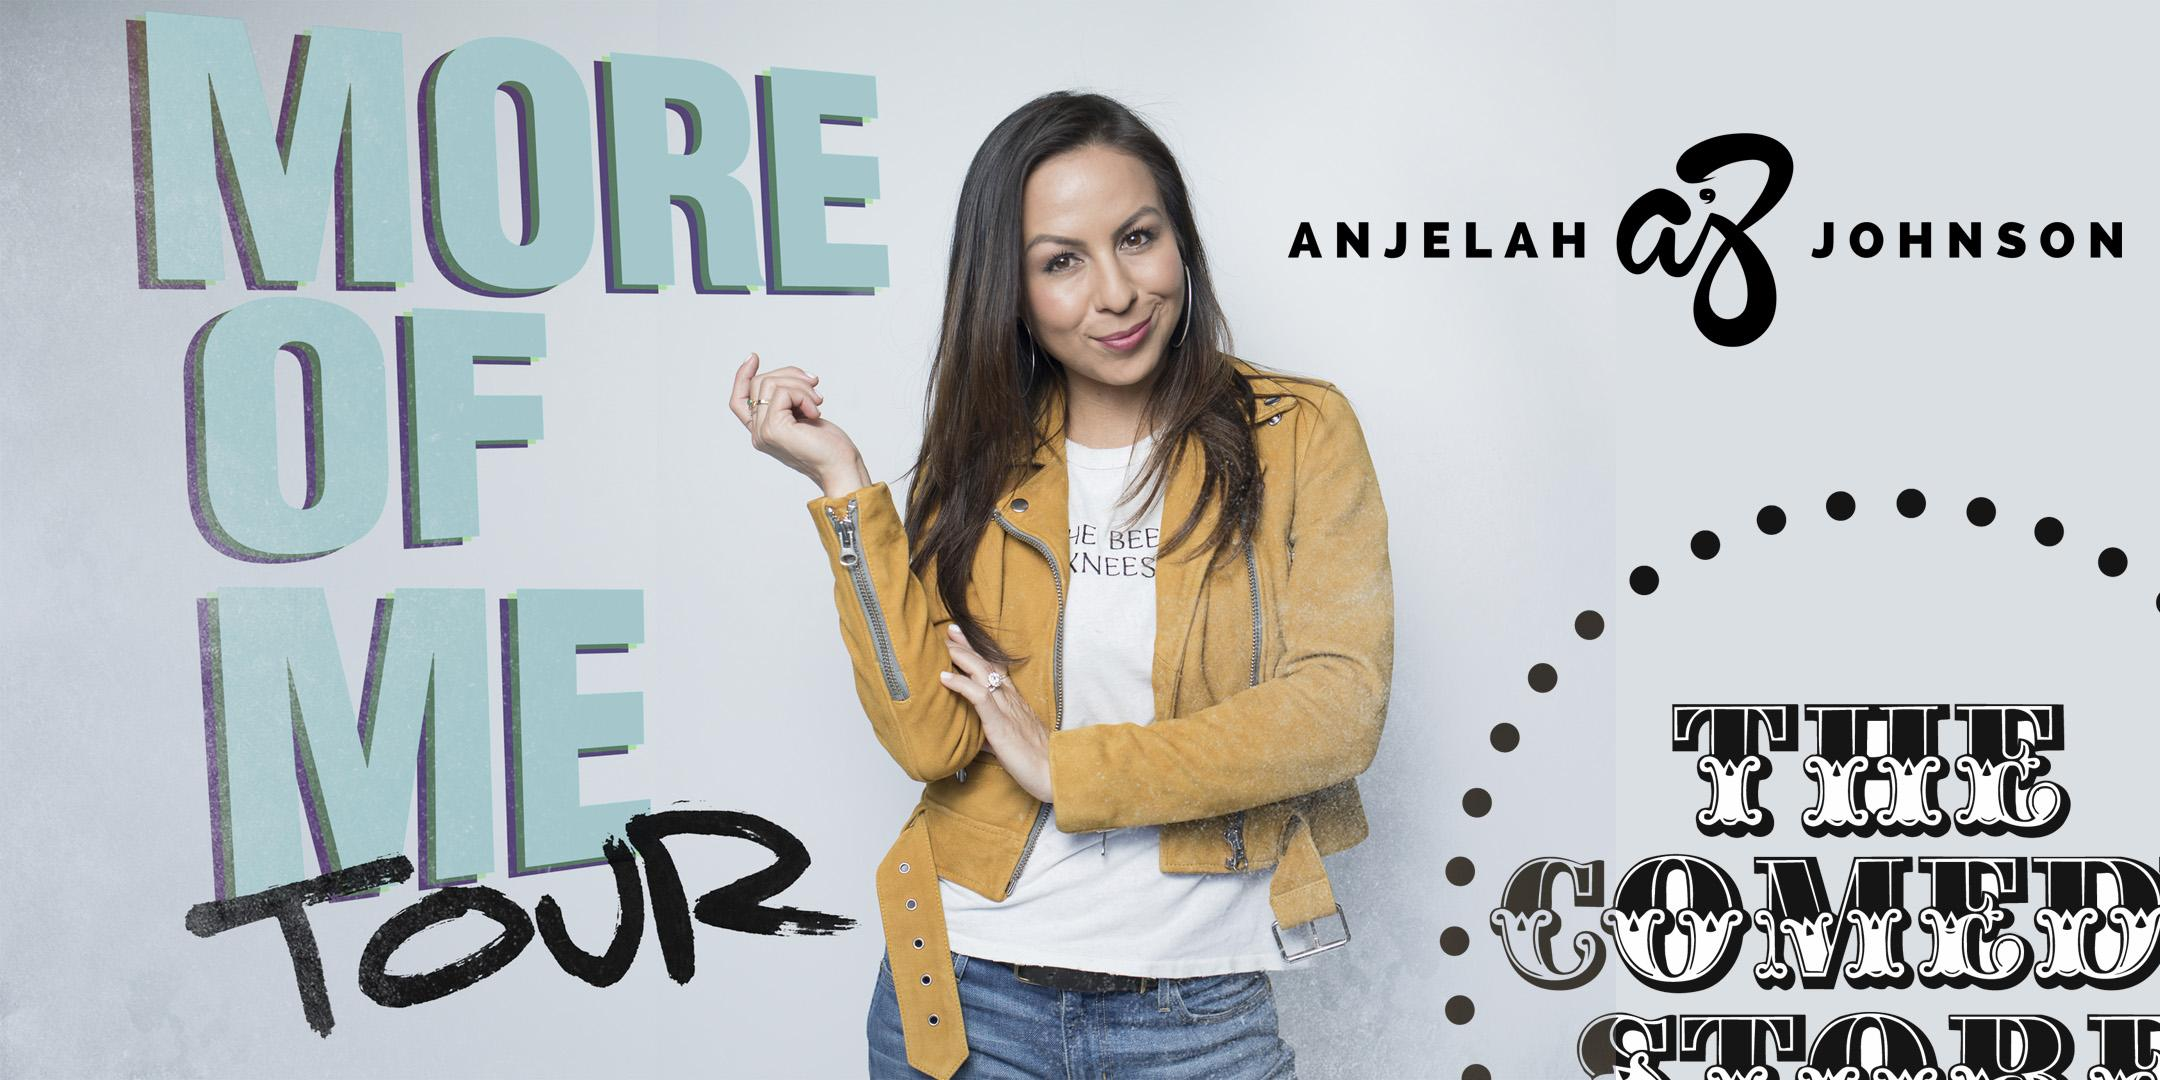 Anjelah Johnson - March 8th - Friday 7:30pm